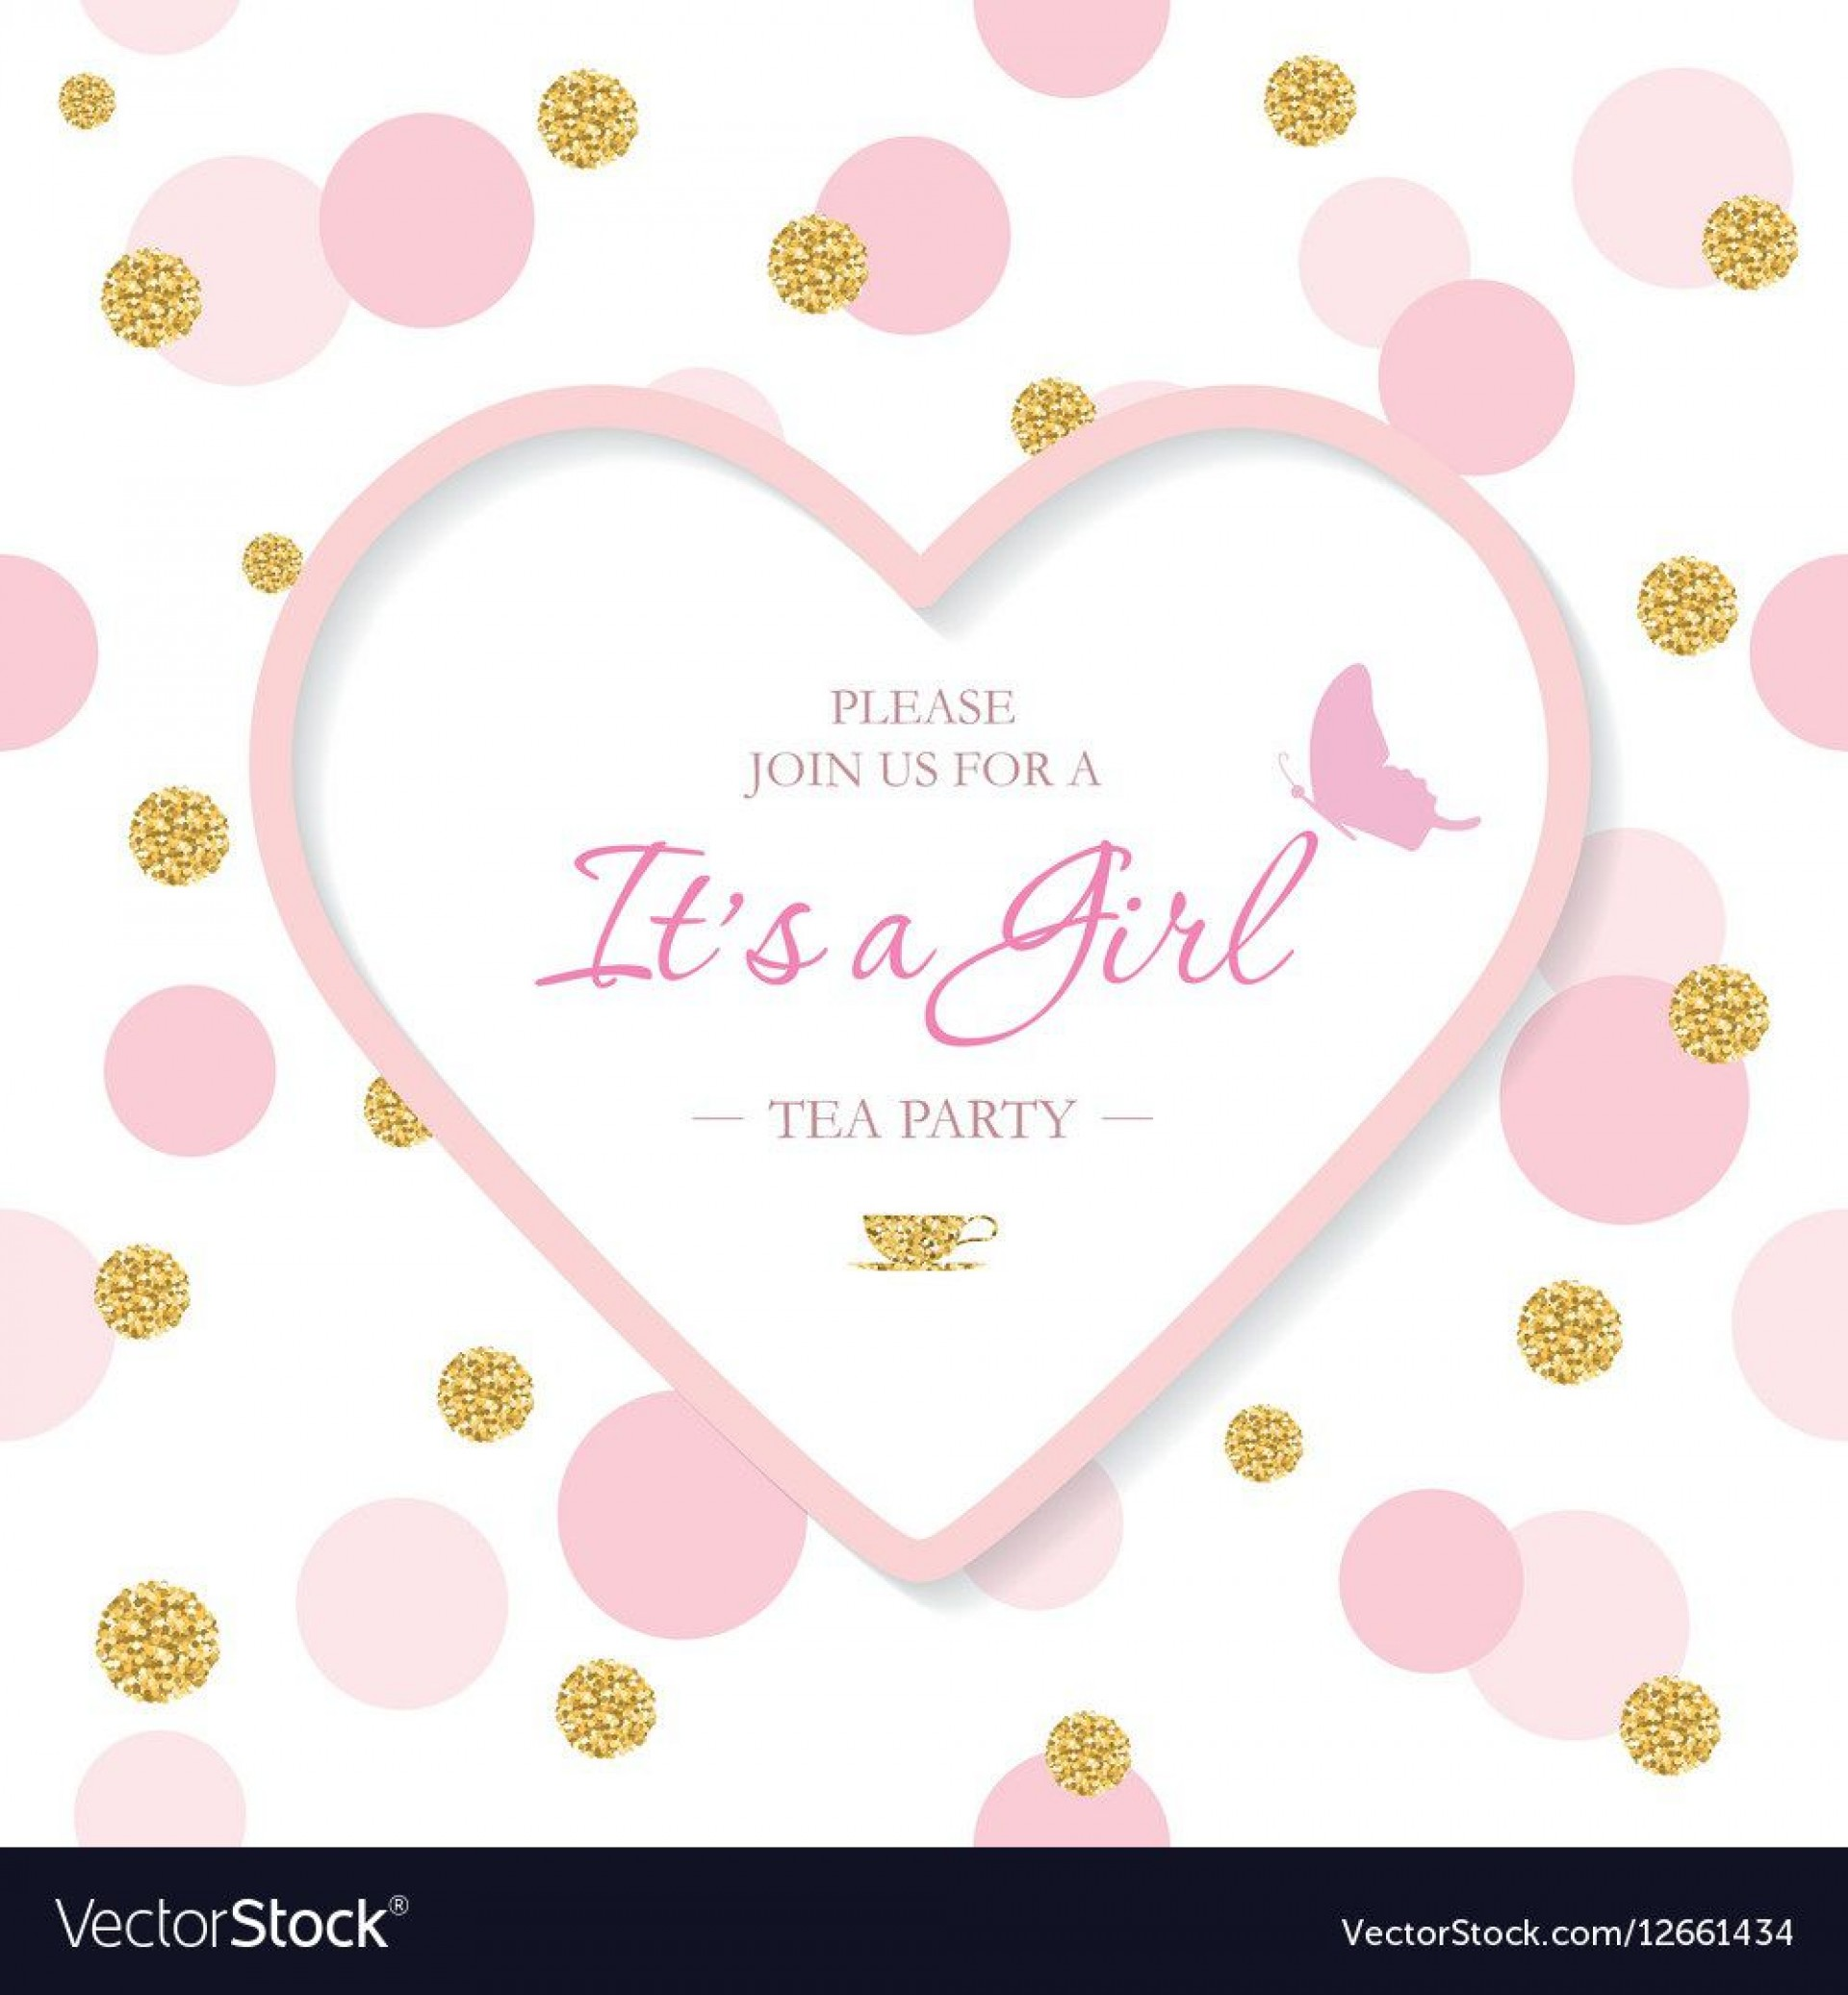 008 Shocking Baby Shower Invitation Template Sample  Editable Girl Downloadable Free Pdf Virtual1920